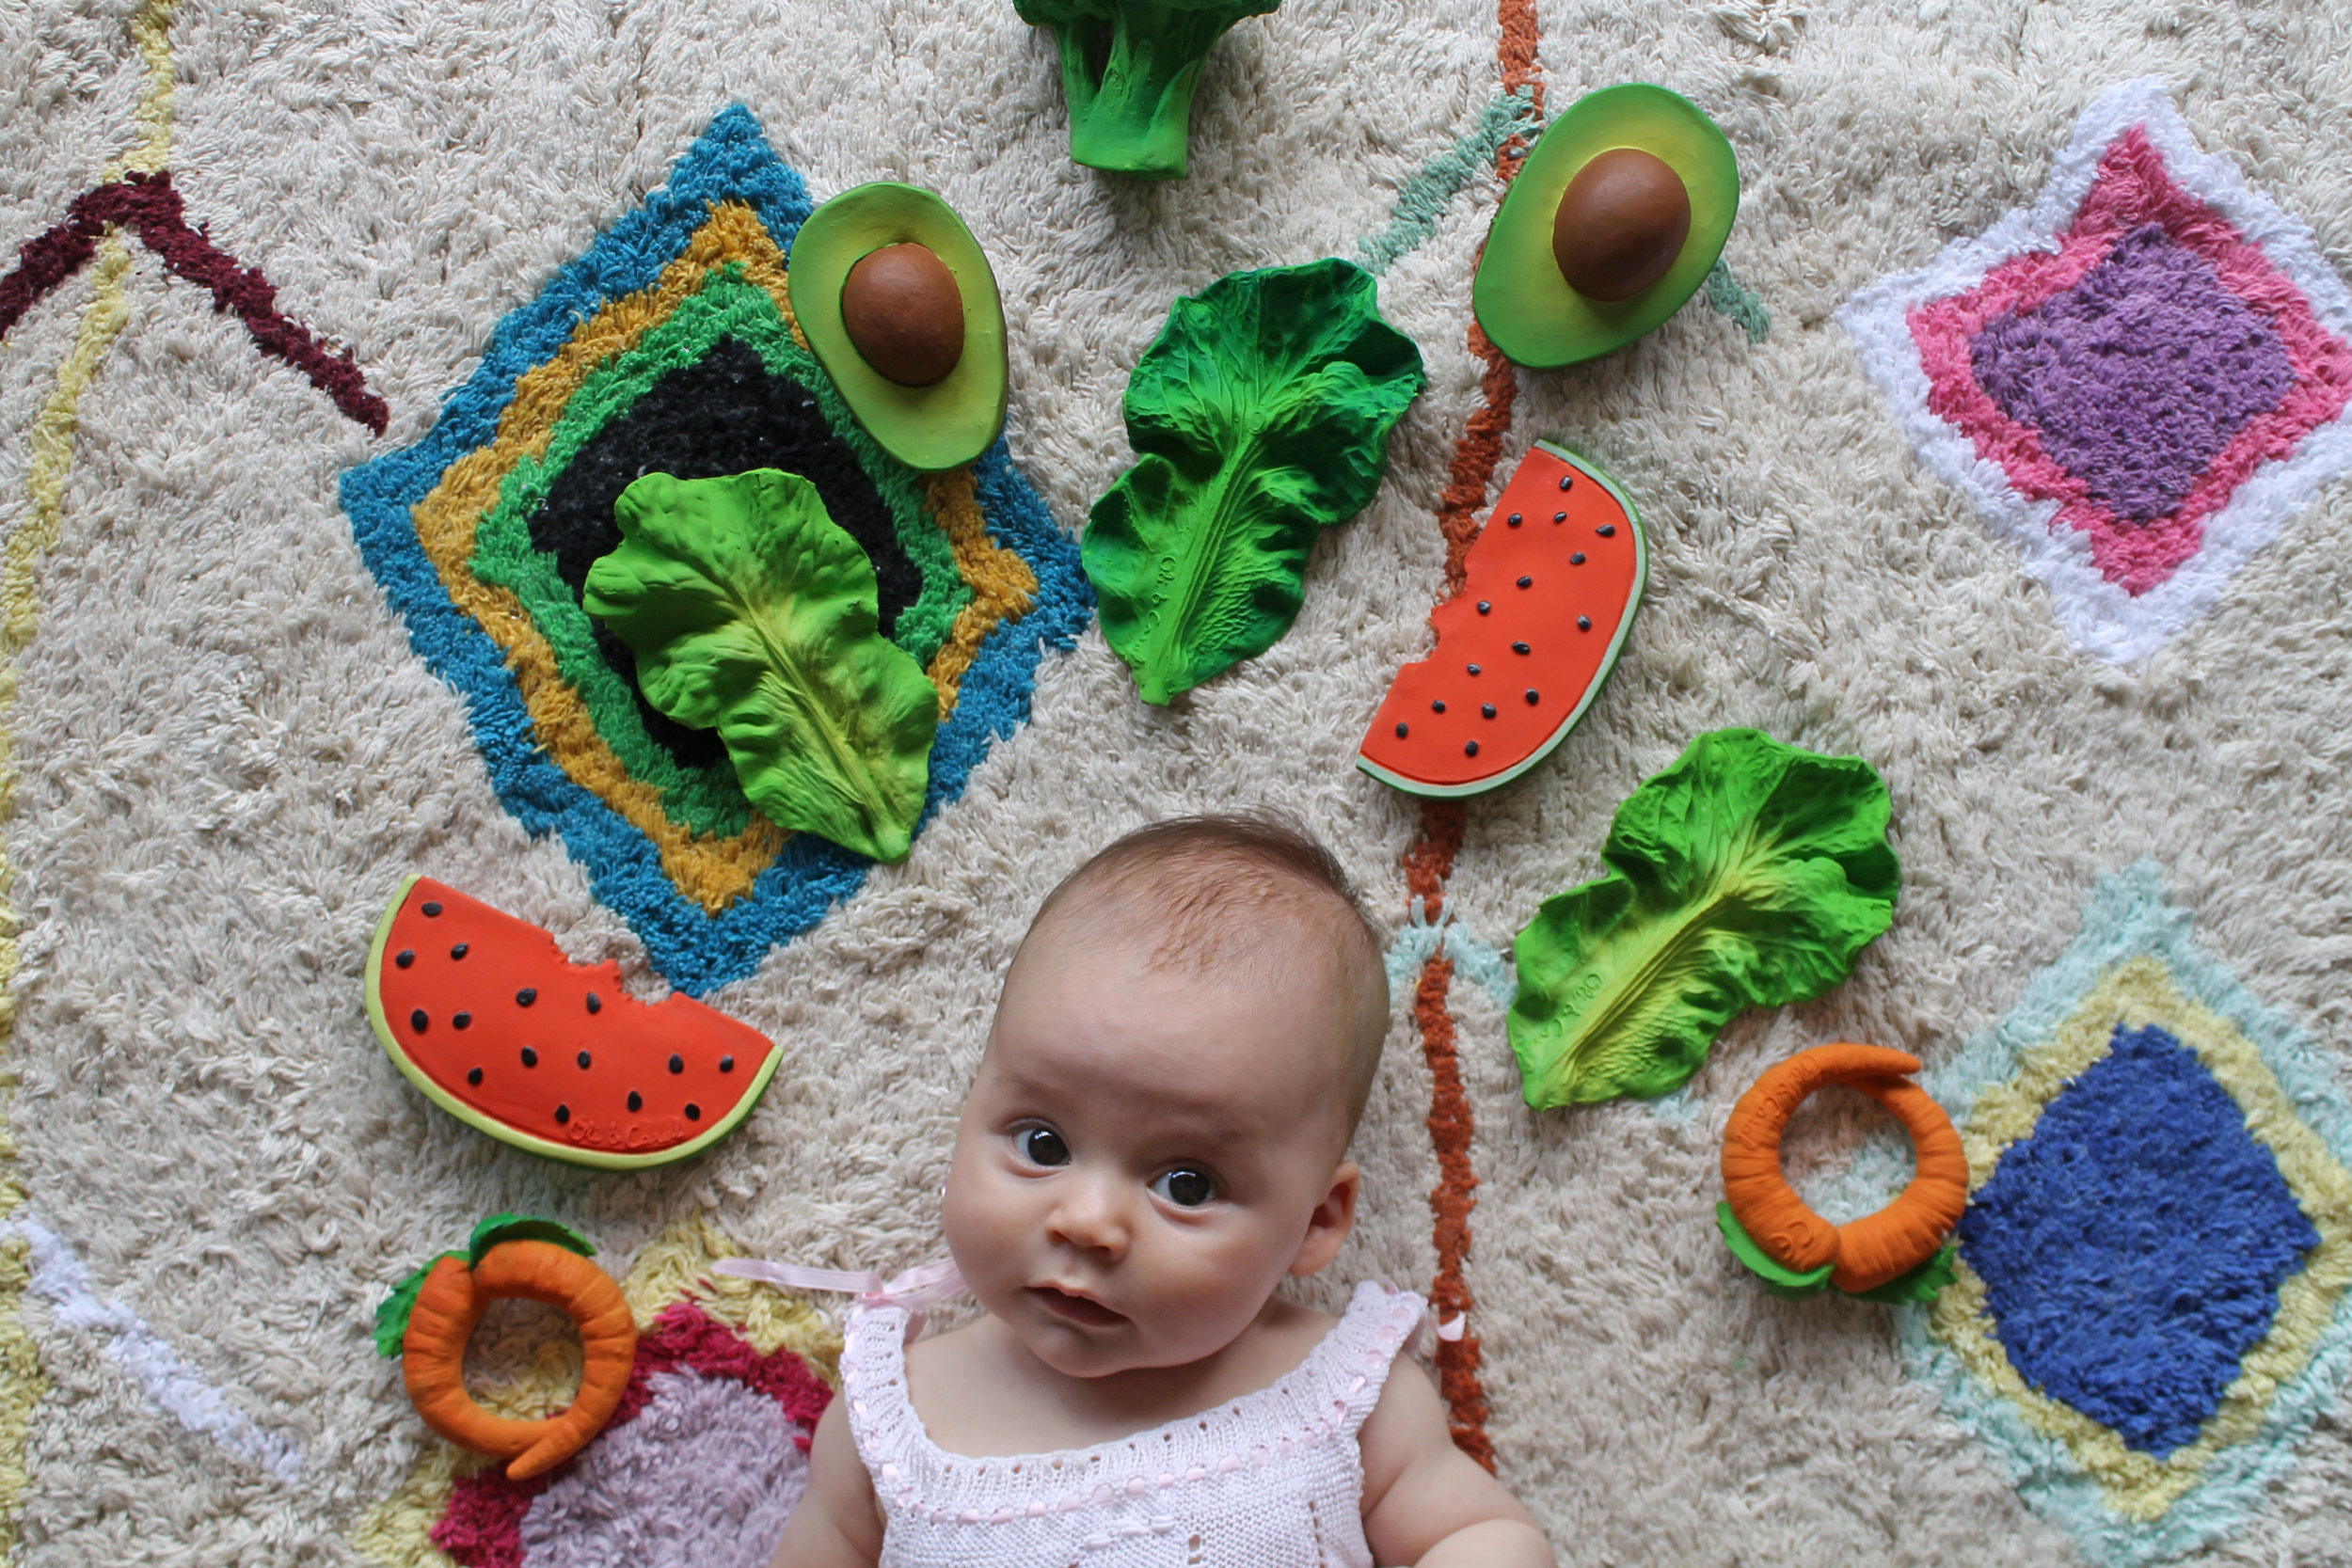 Oli & Carol - Funky Natural Rubber Teethers and Bath Toys<<< Click on Image to see our full range